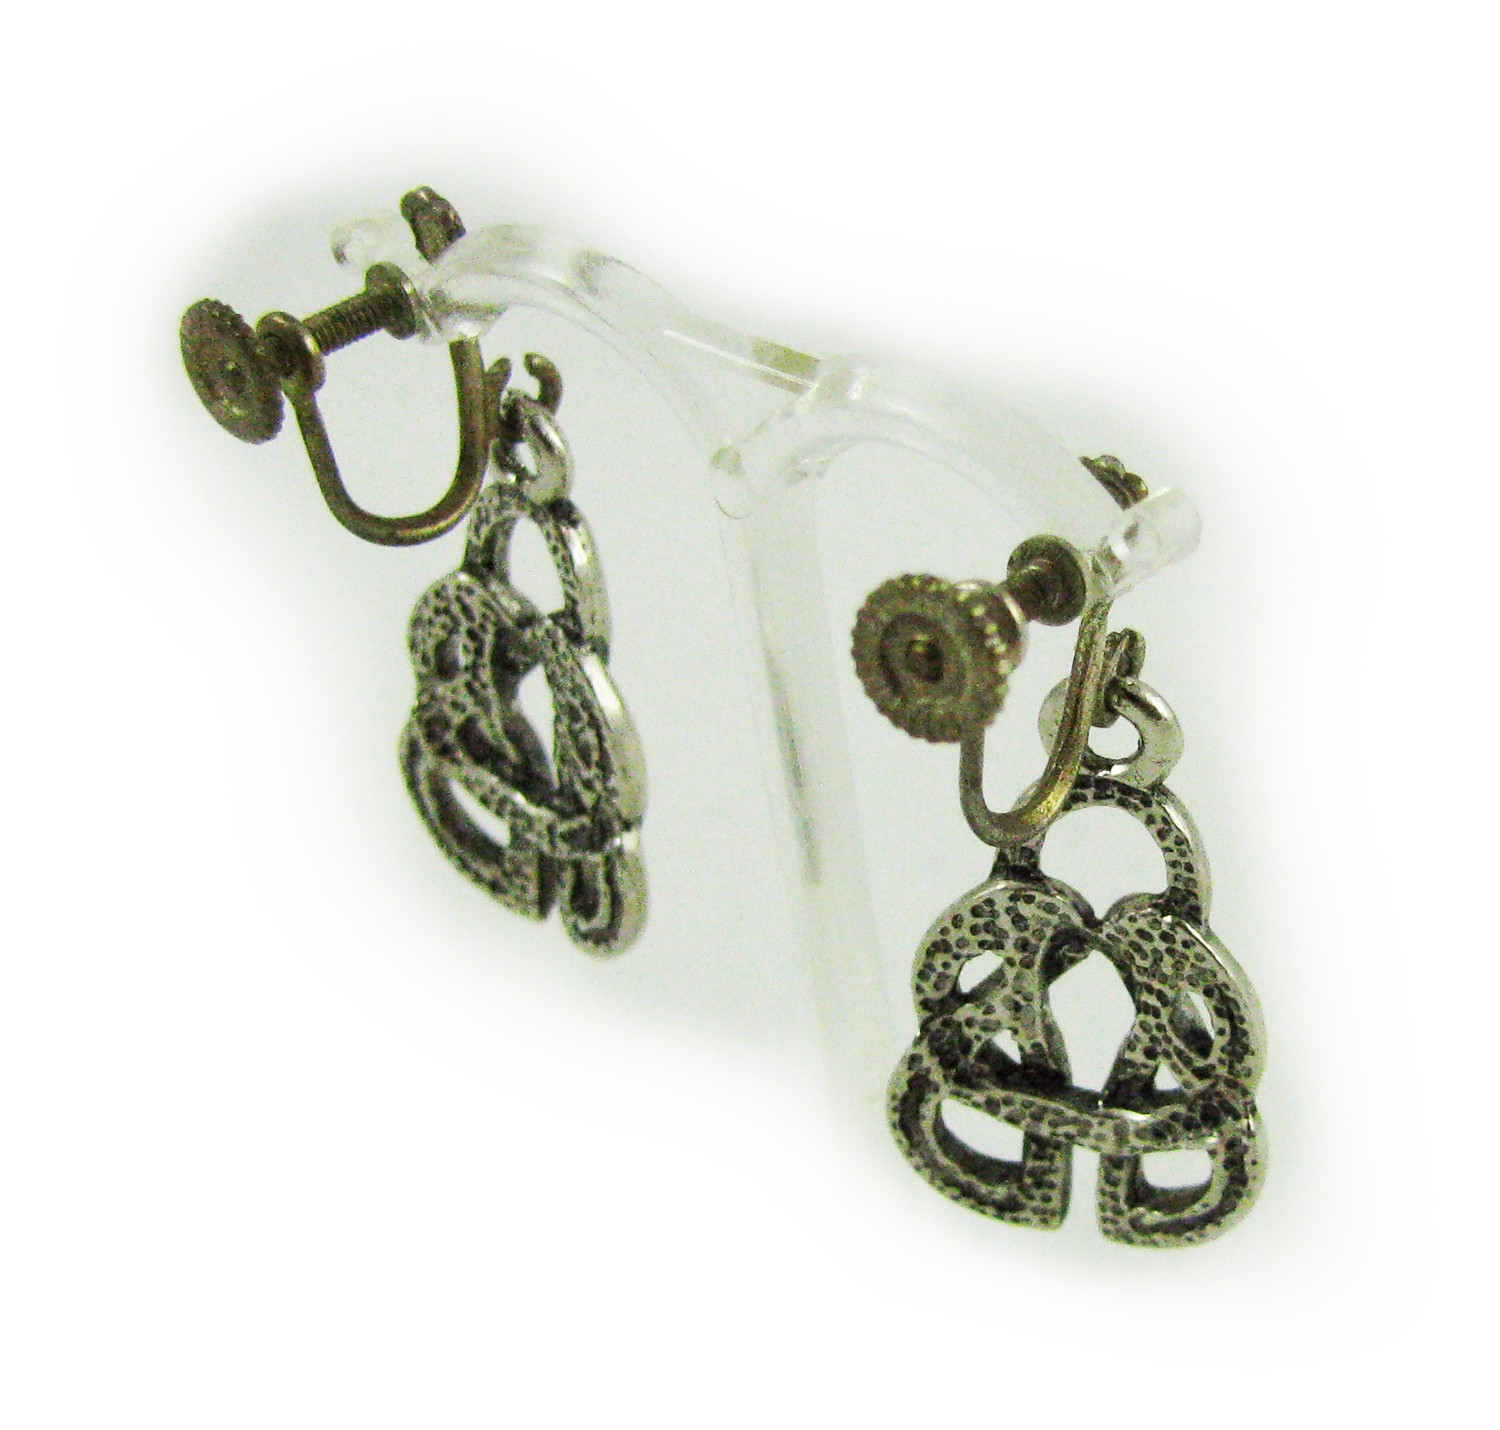 Screw Back Earrings http://v4vintage.com/index.php/vintage-bridal/1910-arts-and-crafts-screw-back-earrings.html